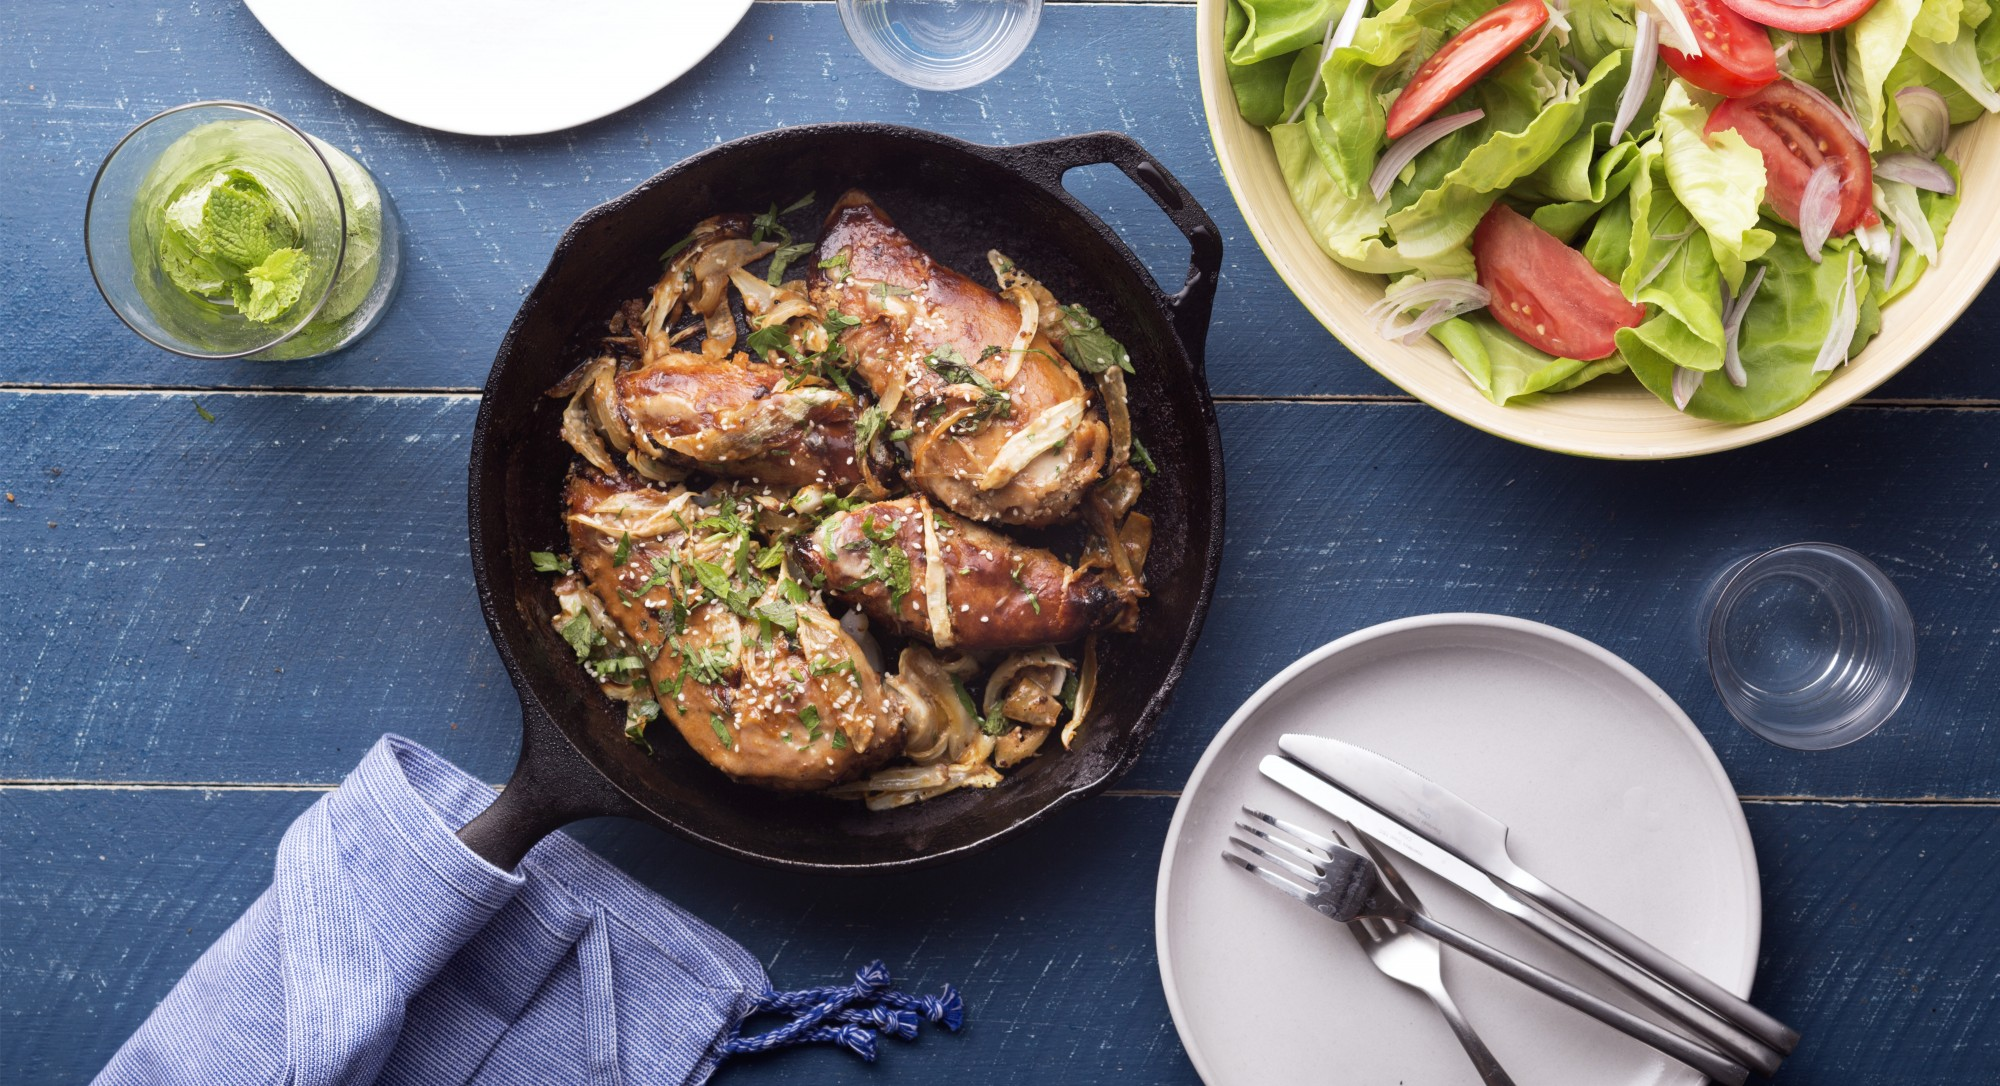 Transform Roasted Chicken Into a Mediterranean Showstopper